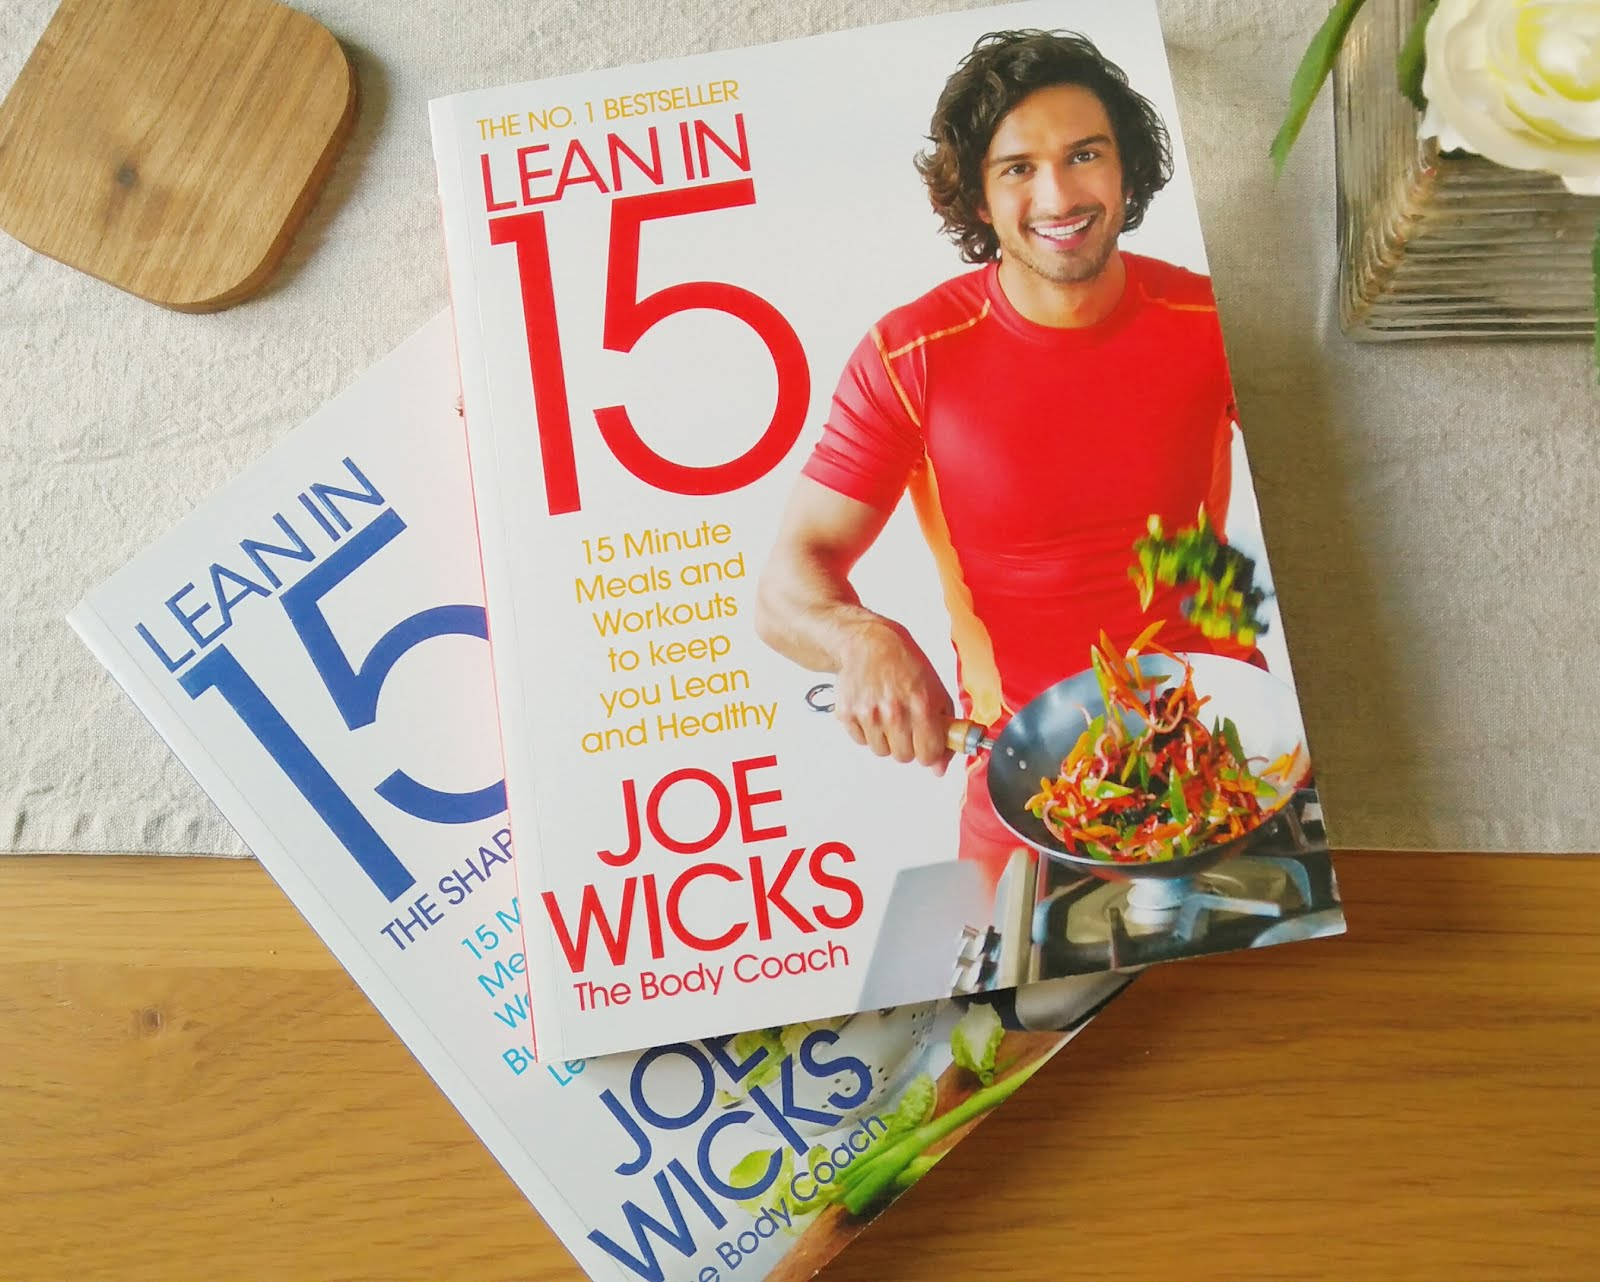 Joe Wicks the Body Coach Lean in 15 books